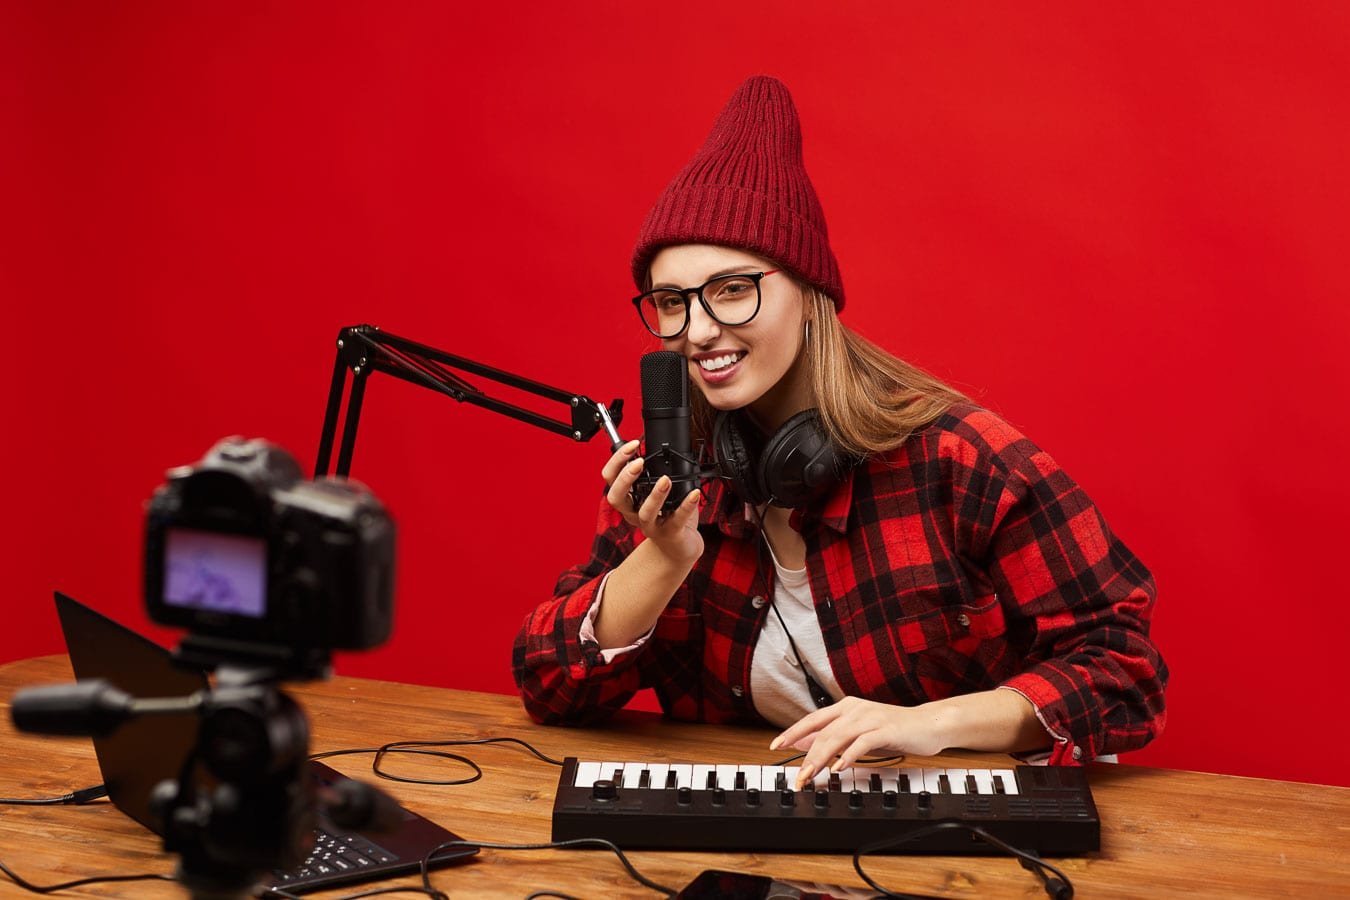 Female playing a keyboard at a desk, in front of a camera